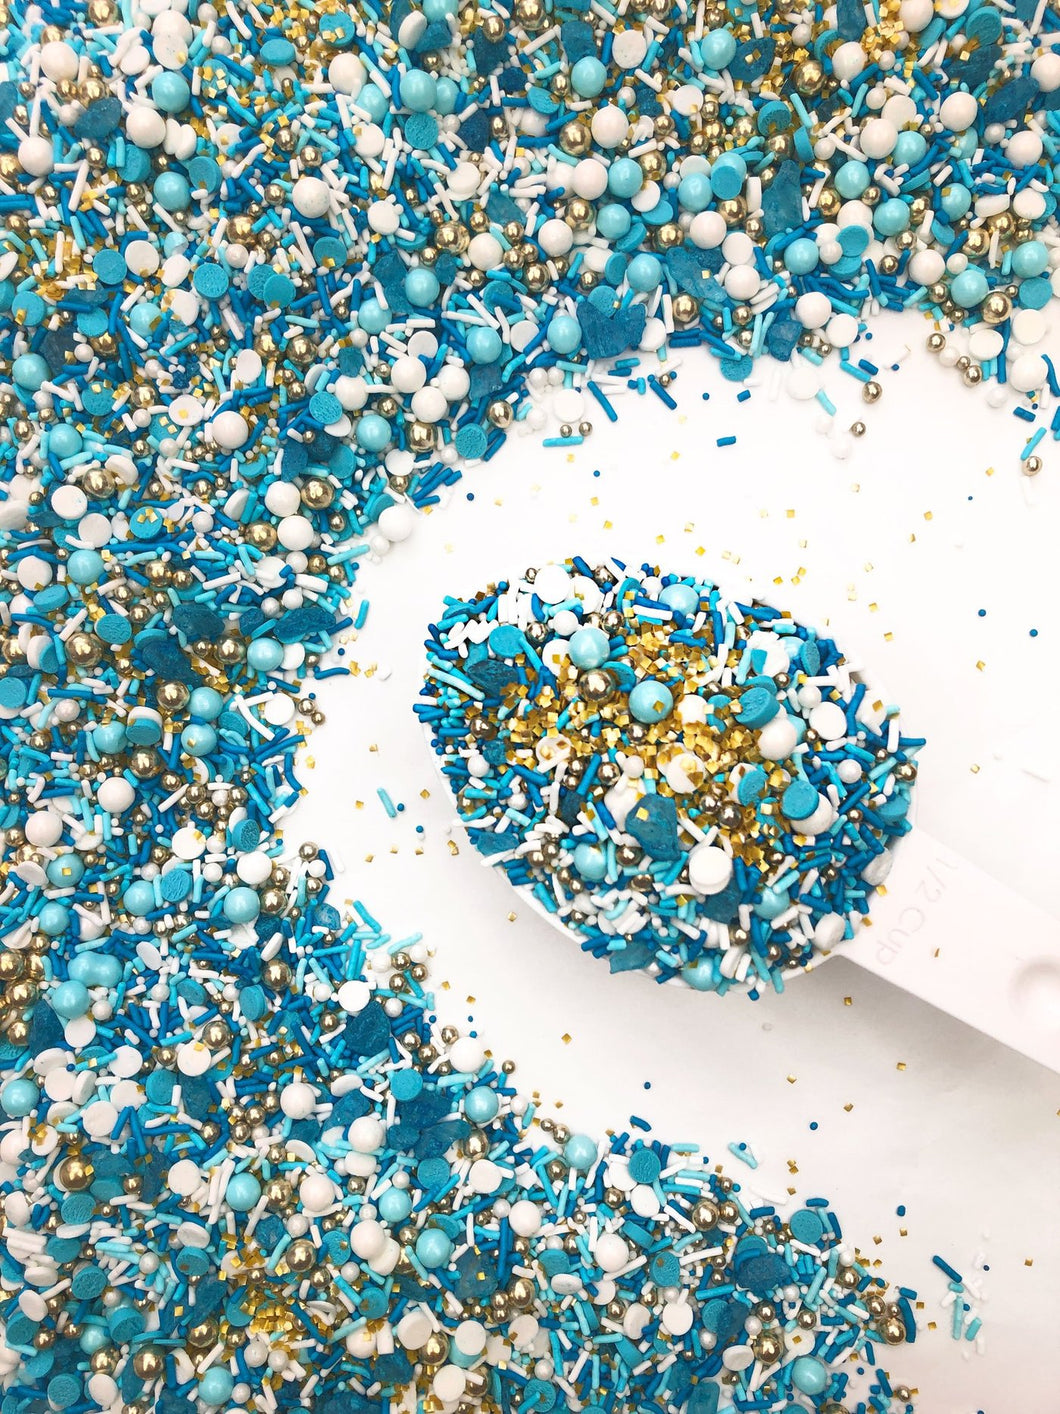 BEACH GLASS Twinkle Sprinkle Medley